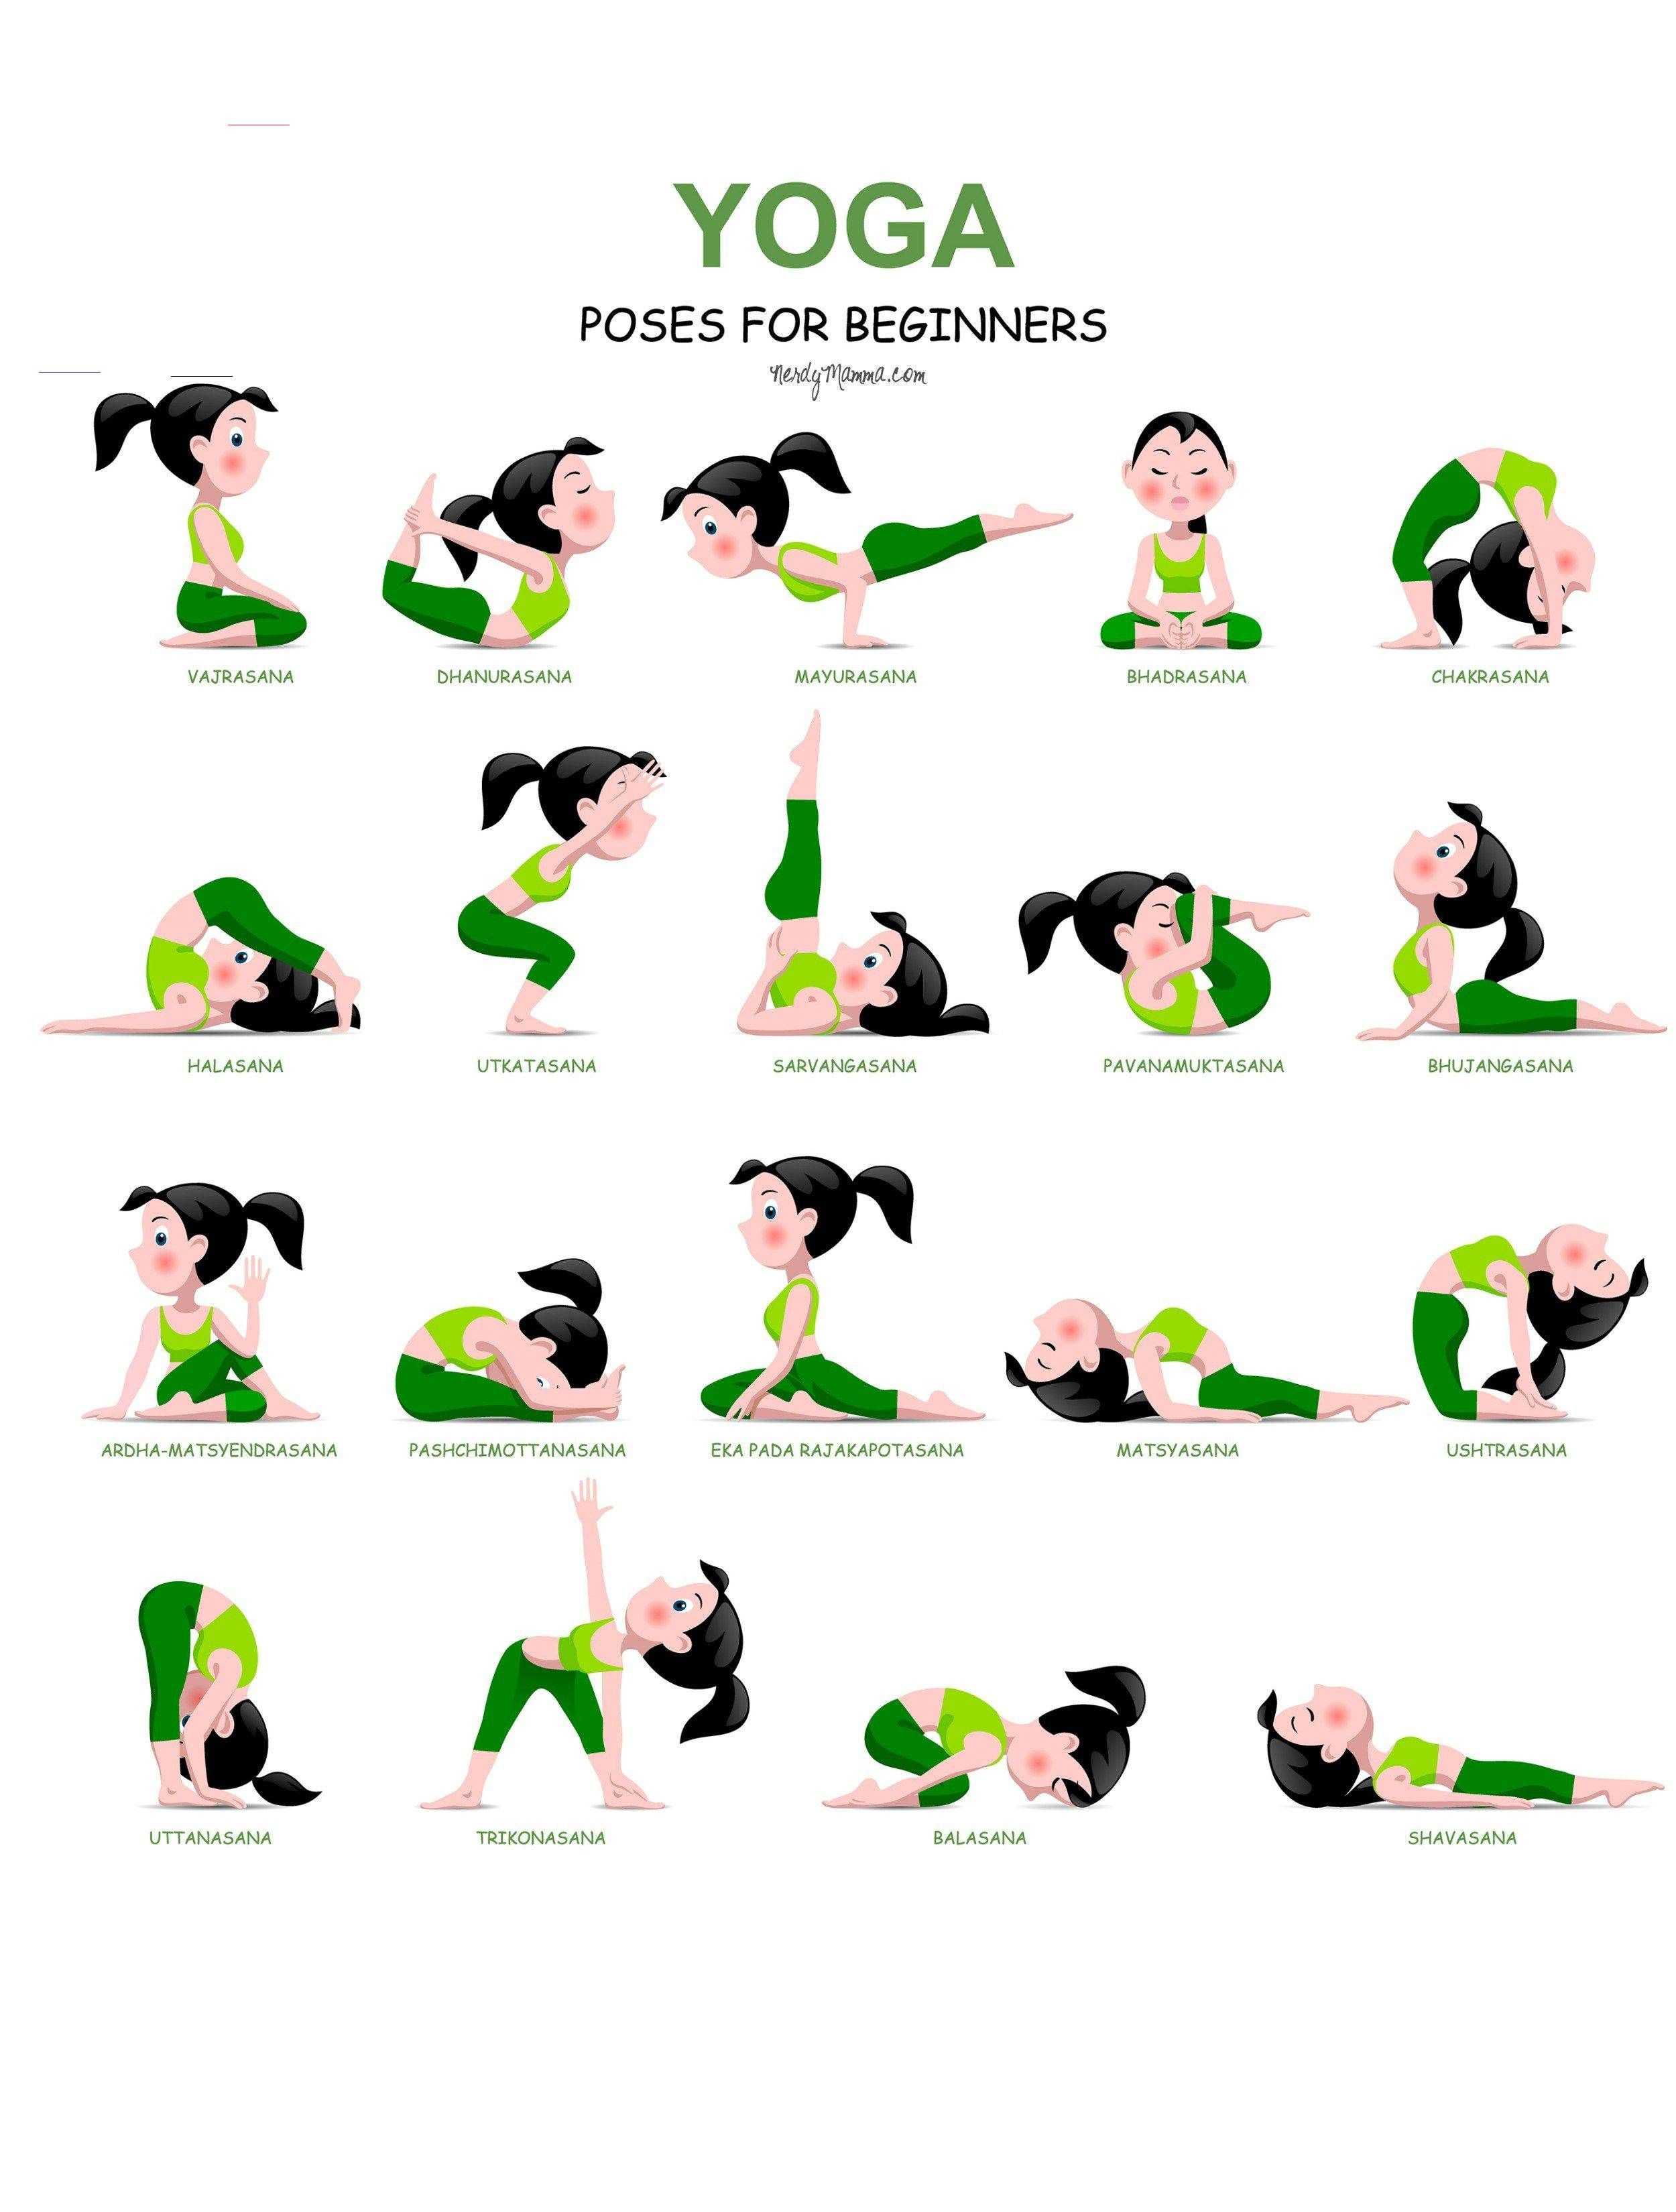 20 Easy Yoga Poses For Beginners With A Free Printable Yogaposes Inside I Decided Pull Together 20 Easy Easy Yoga Poses Easy Yoga Workouts Relaxing Yoga